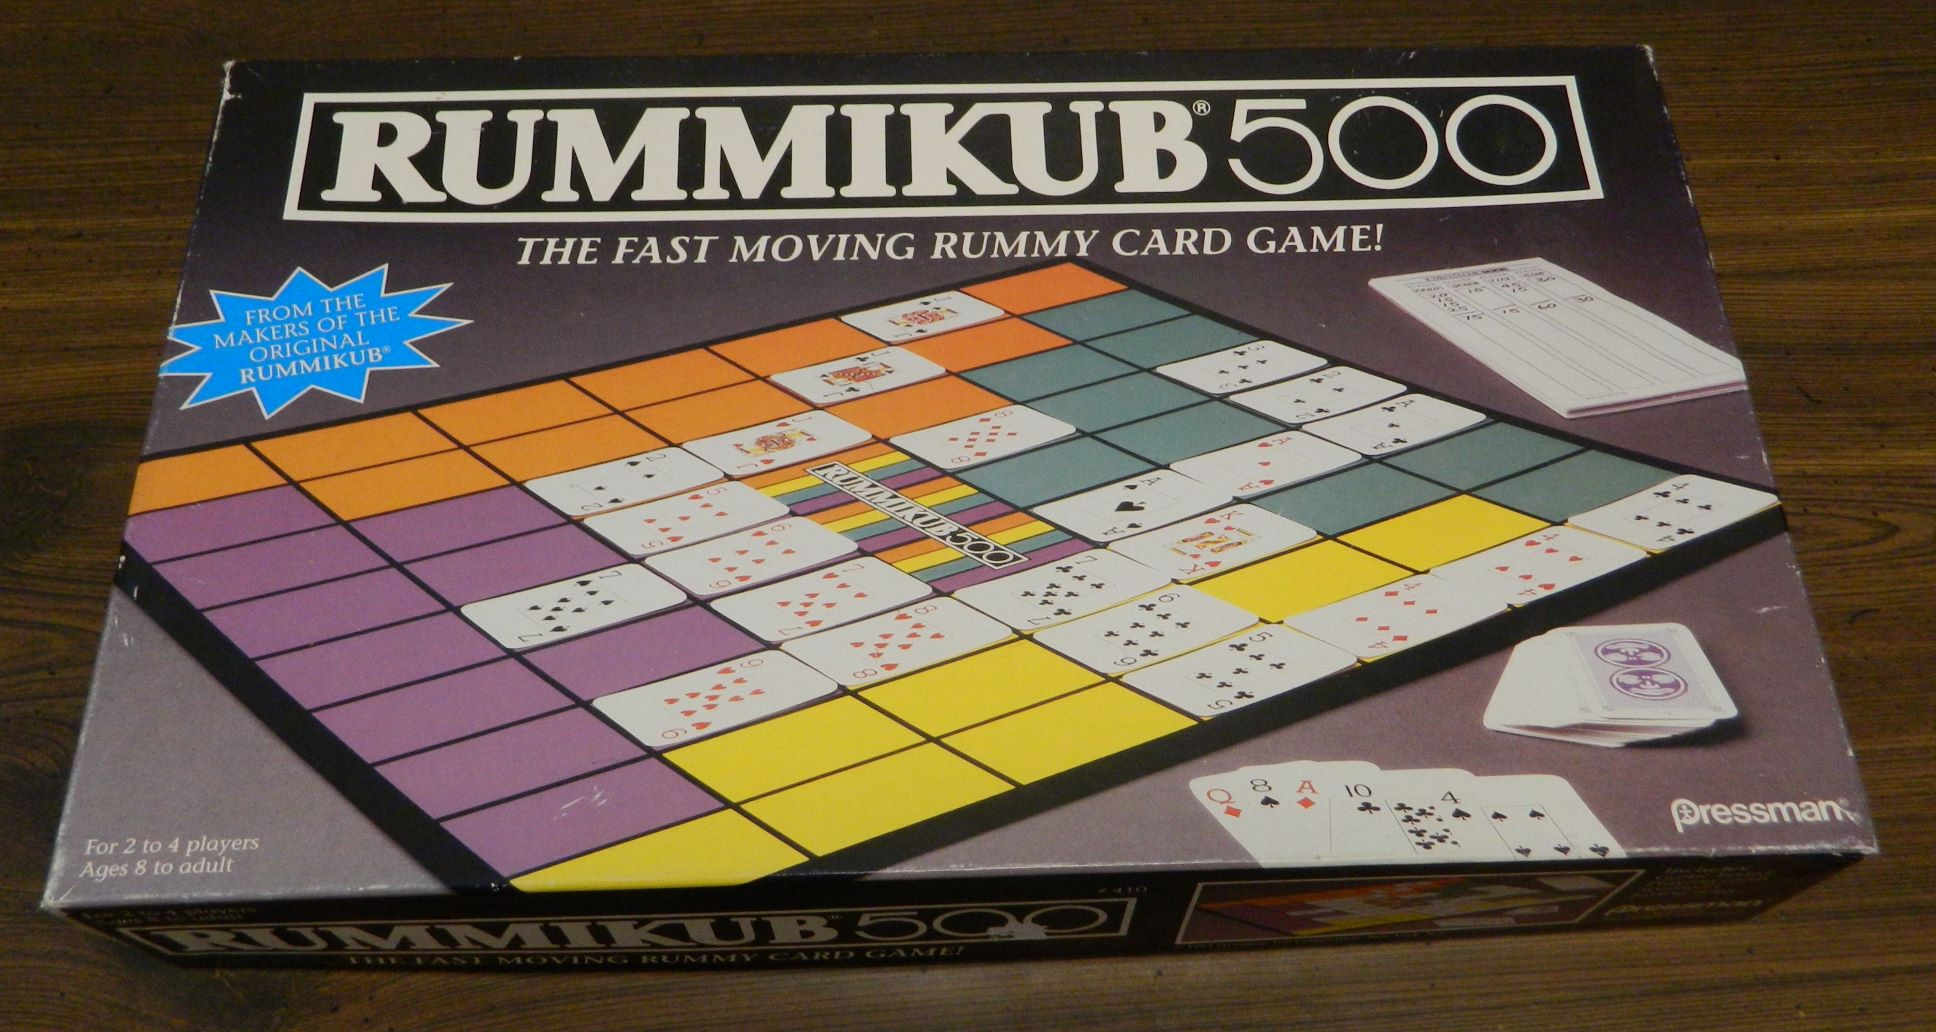 Box for Rummikub 500